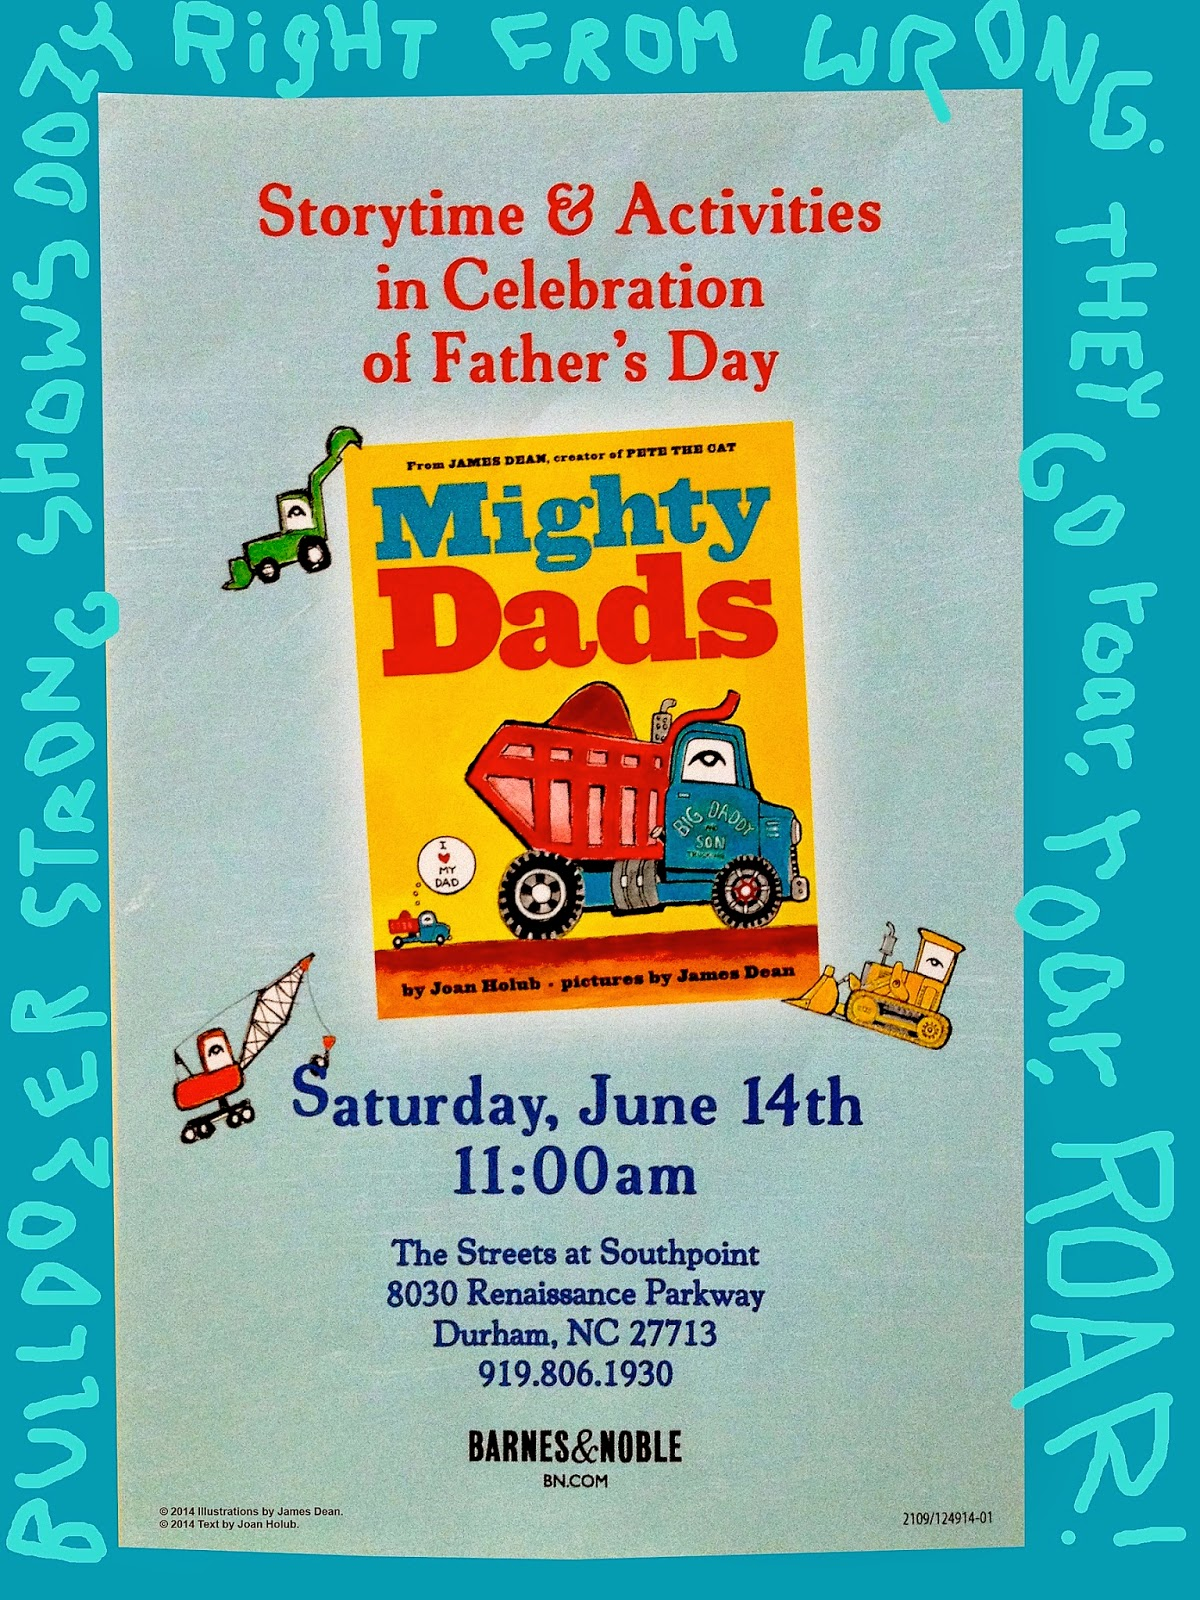 http://www.barnesandnoble.com/w/mighty-dads-joan-holub/1116995778?ean=9780545609685&itm=1&usri=9780545609685